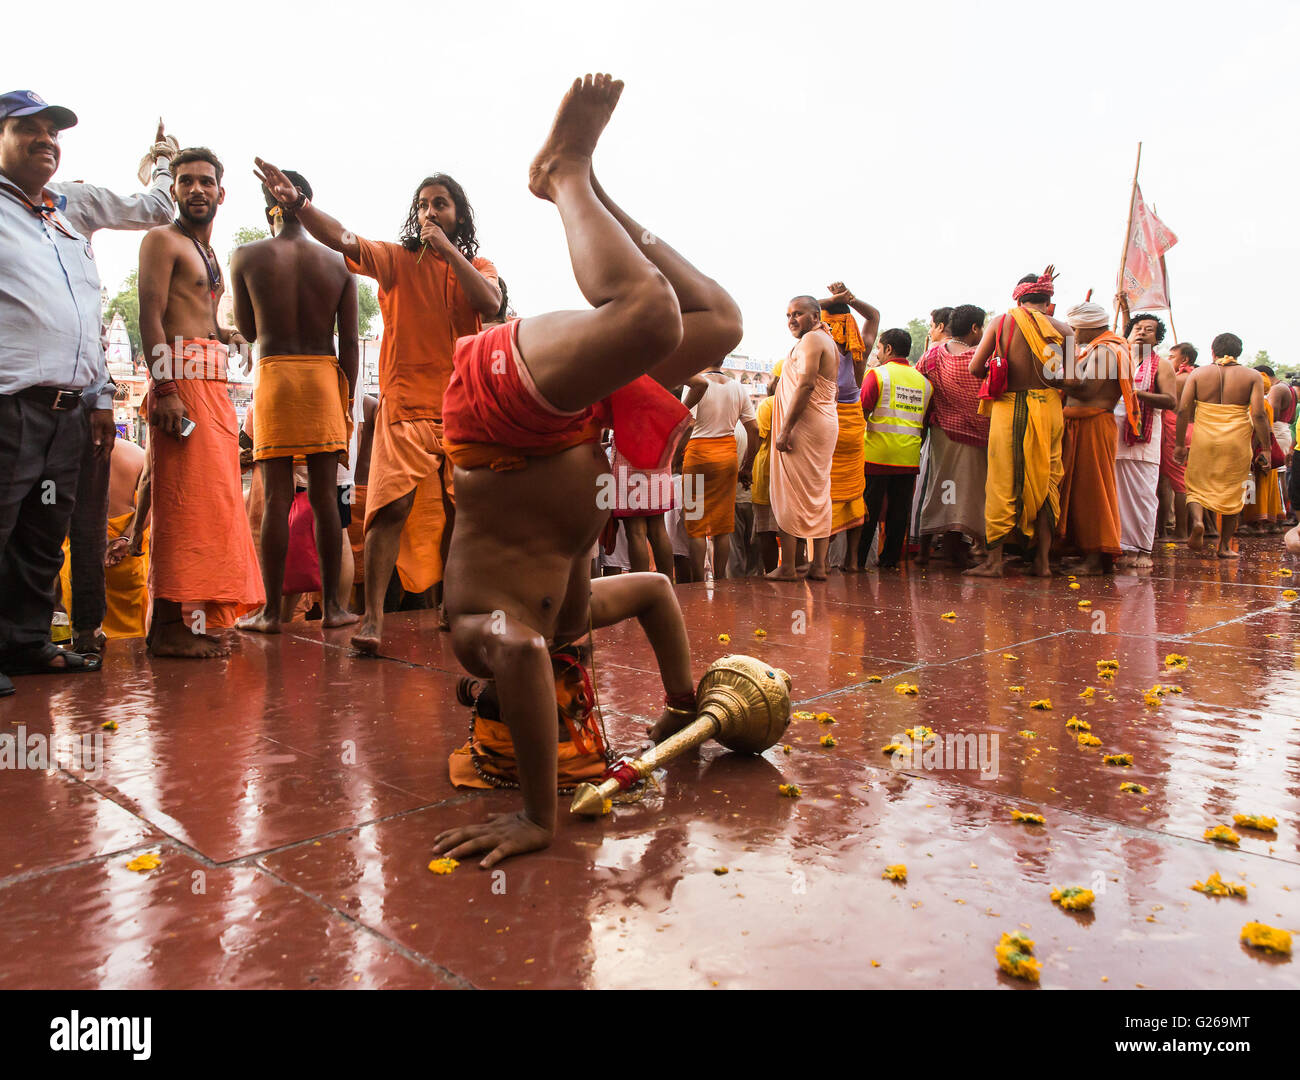 Ujjain, Madhya Pradesh, India, May 21, 2016: A Holy Hindu Monks (Naga Sadhu) is exhibiting the body fitness before - Stock Image